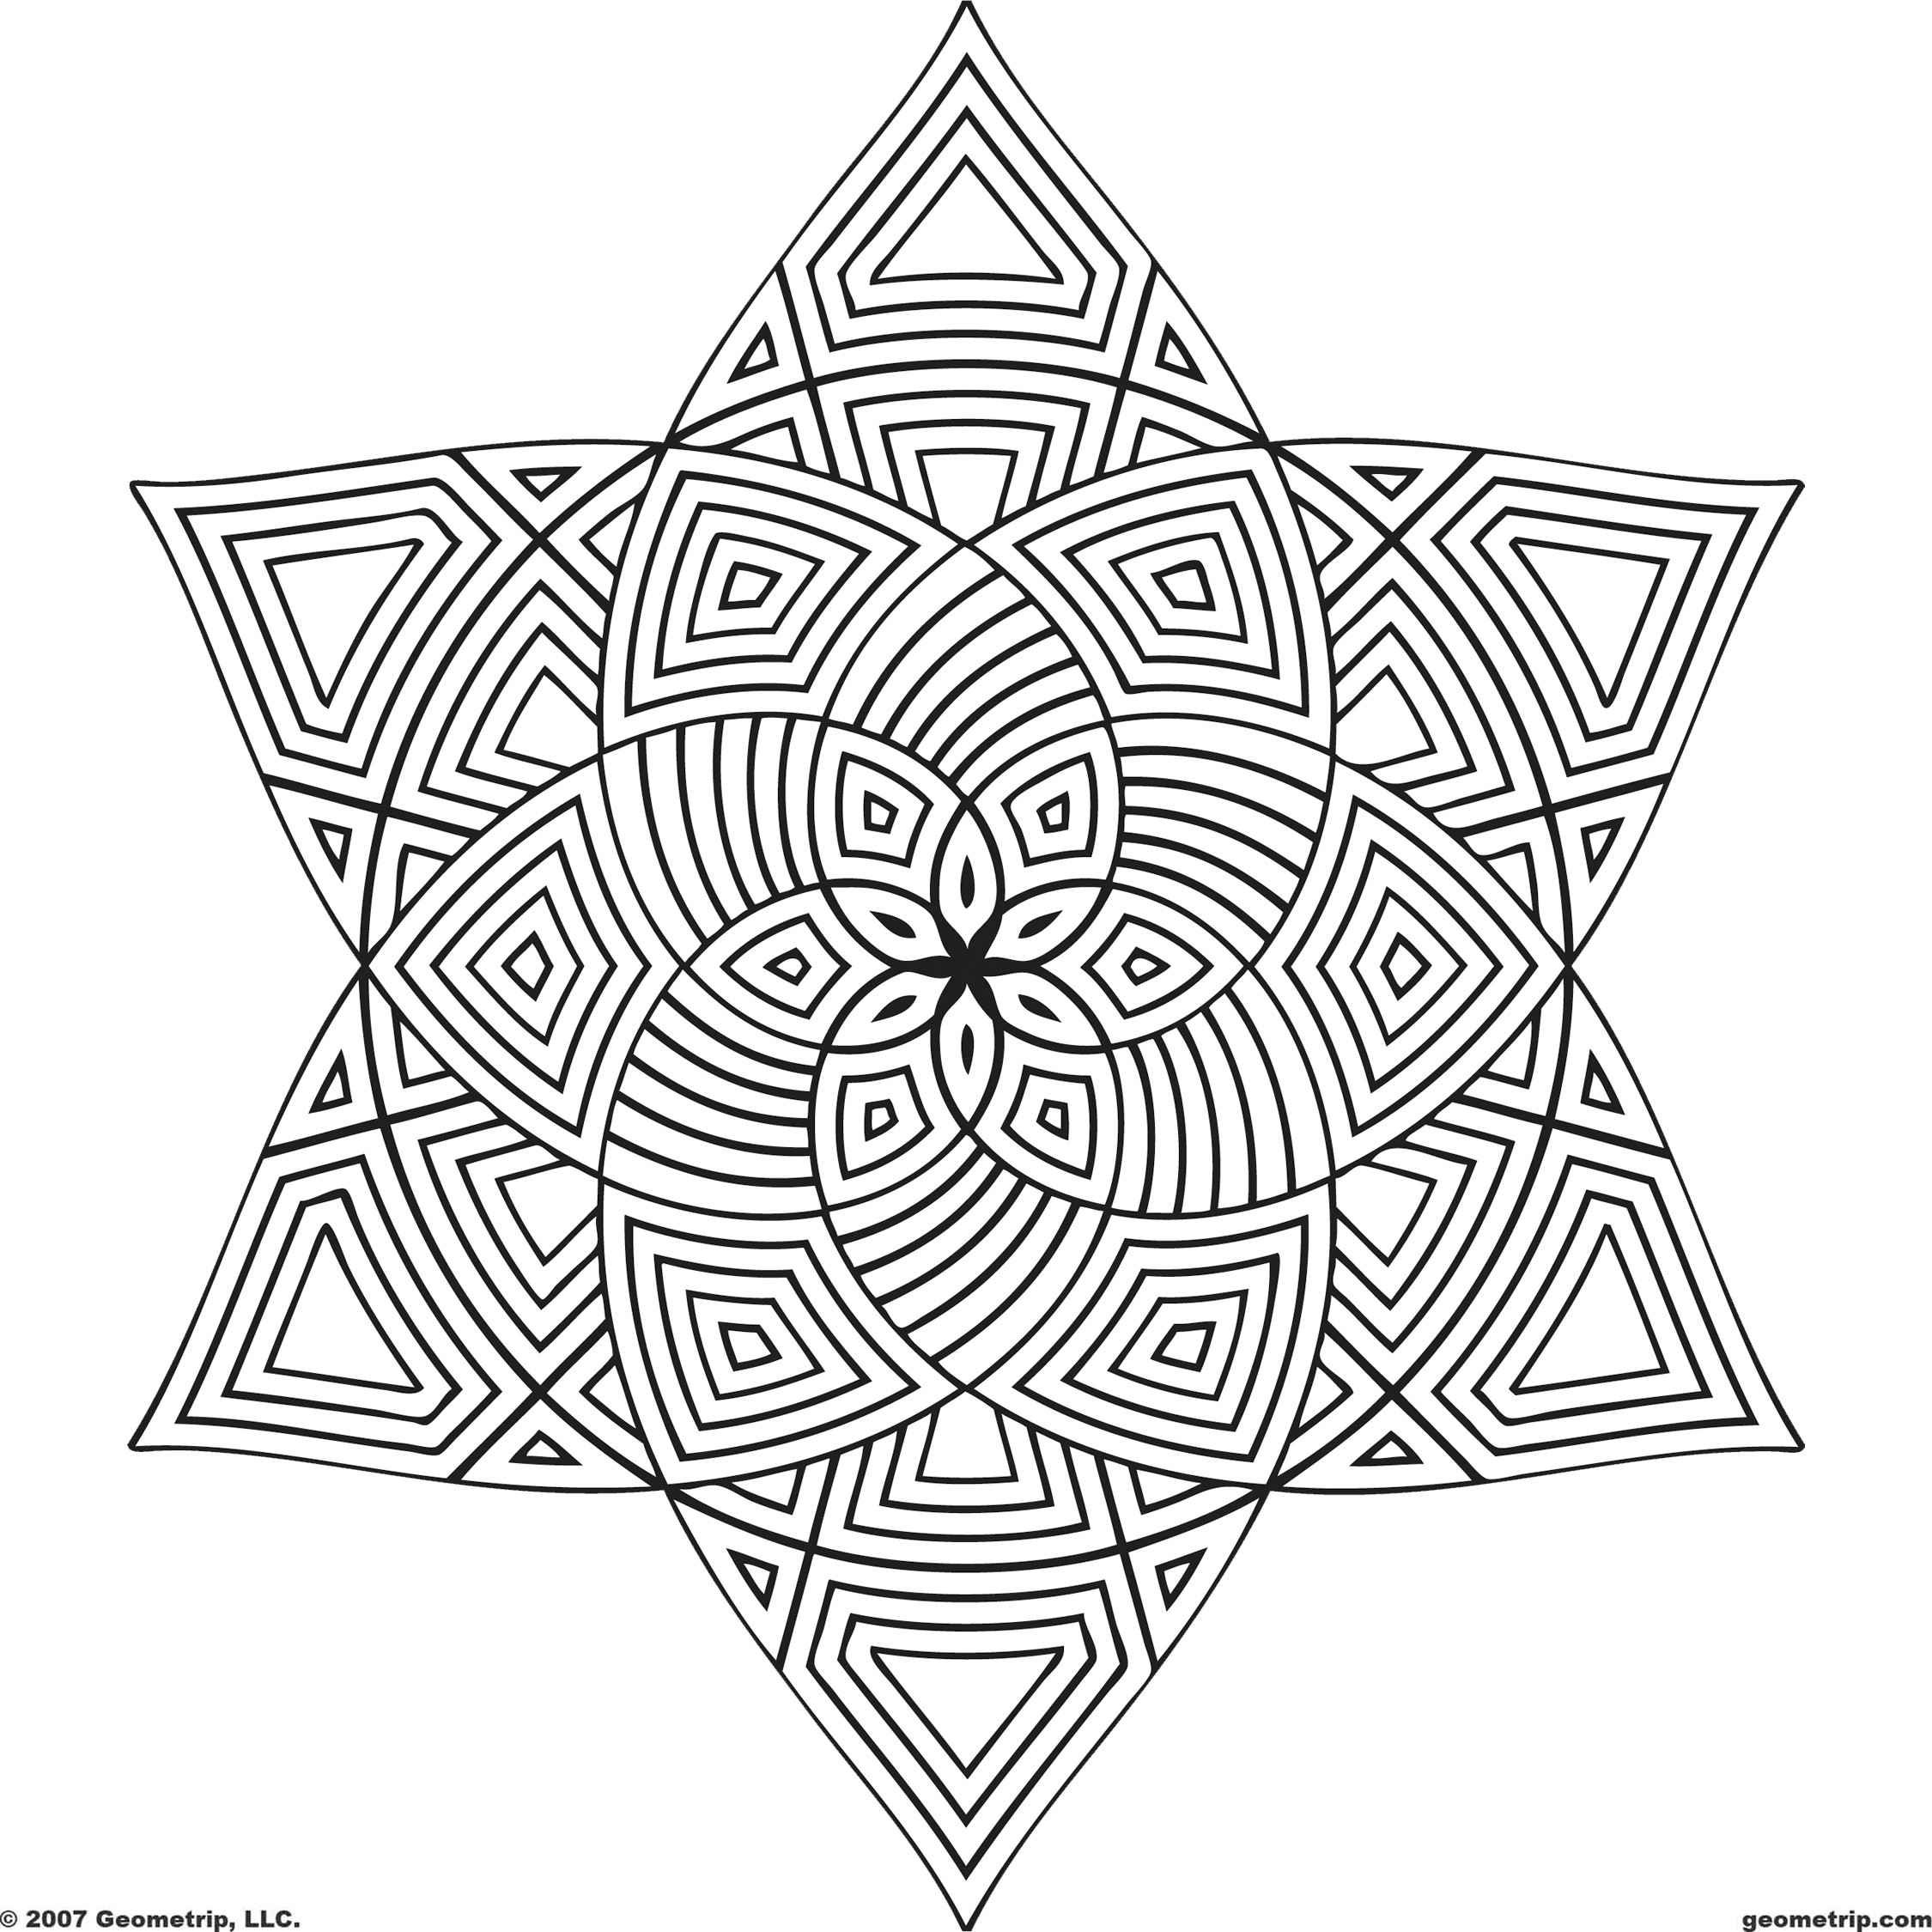 shapes coloring book shape coloring page 17 printable coloring page for kids shapes coloring book